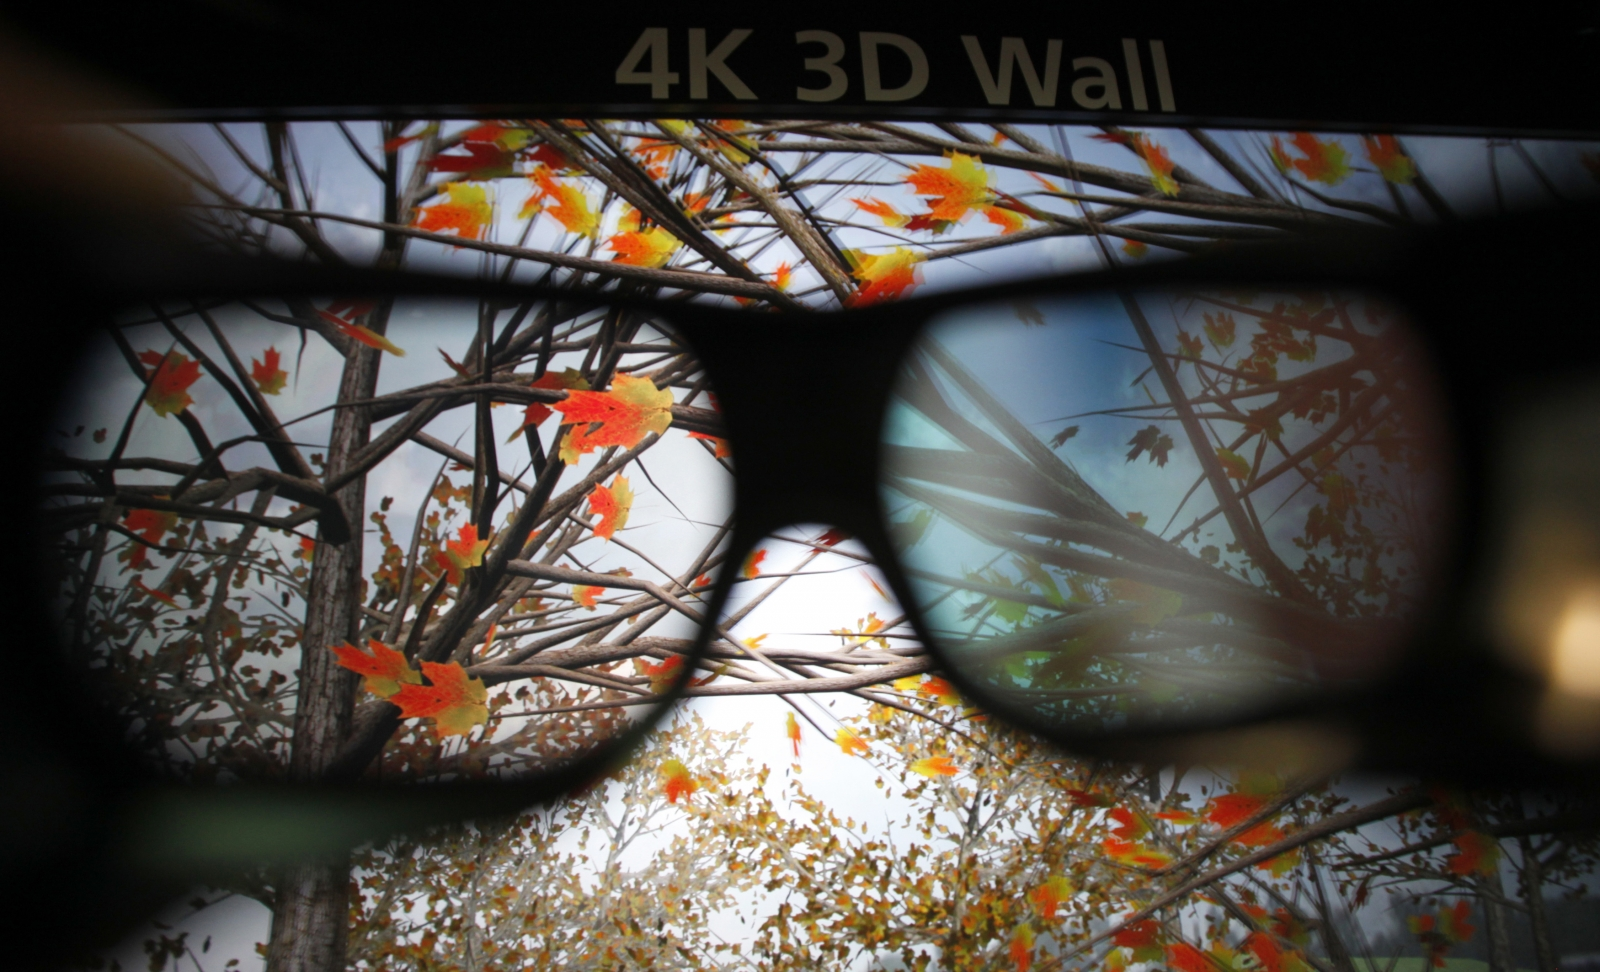 MIT invents new 3D movie screen that will allow movie-goers to watch without glasses